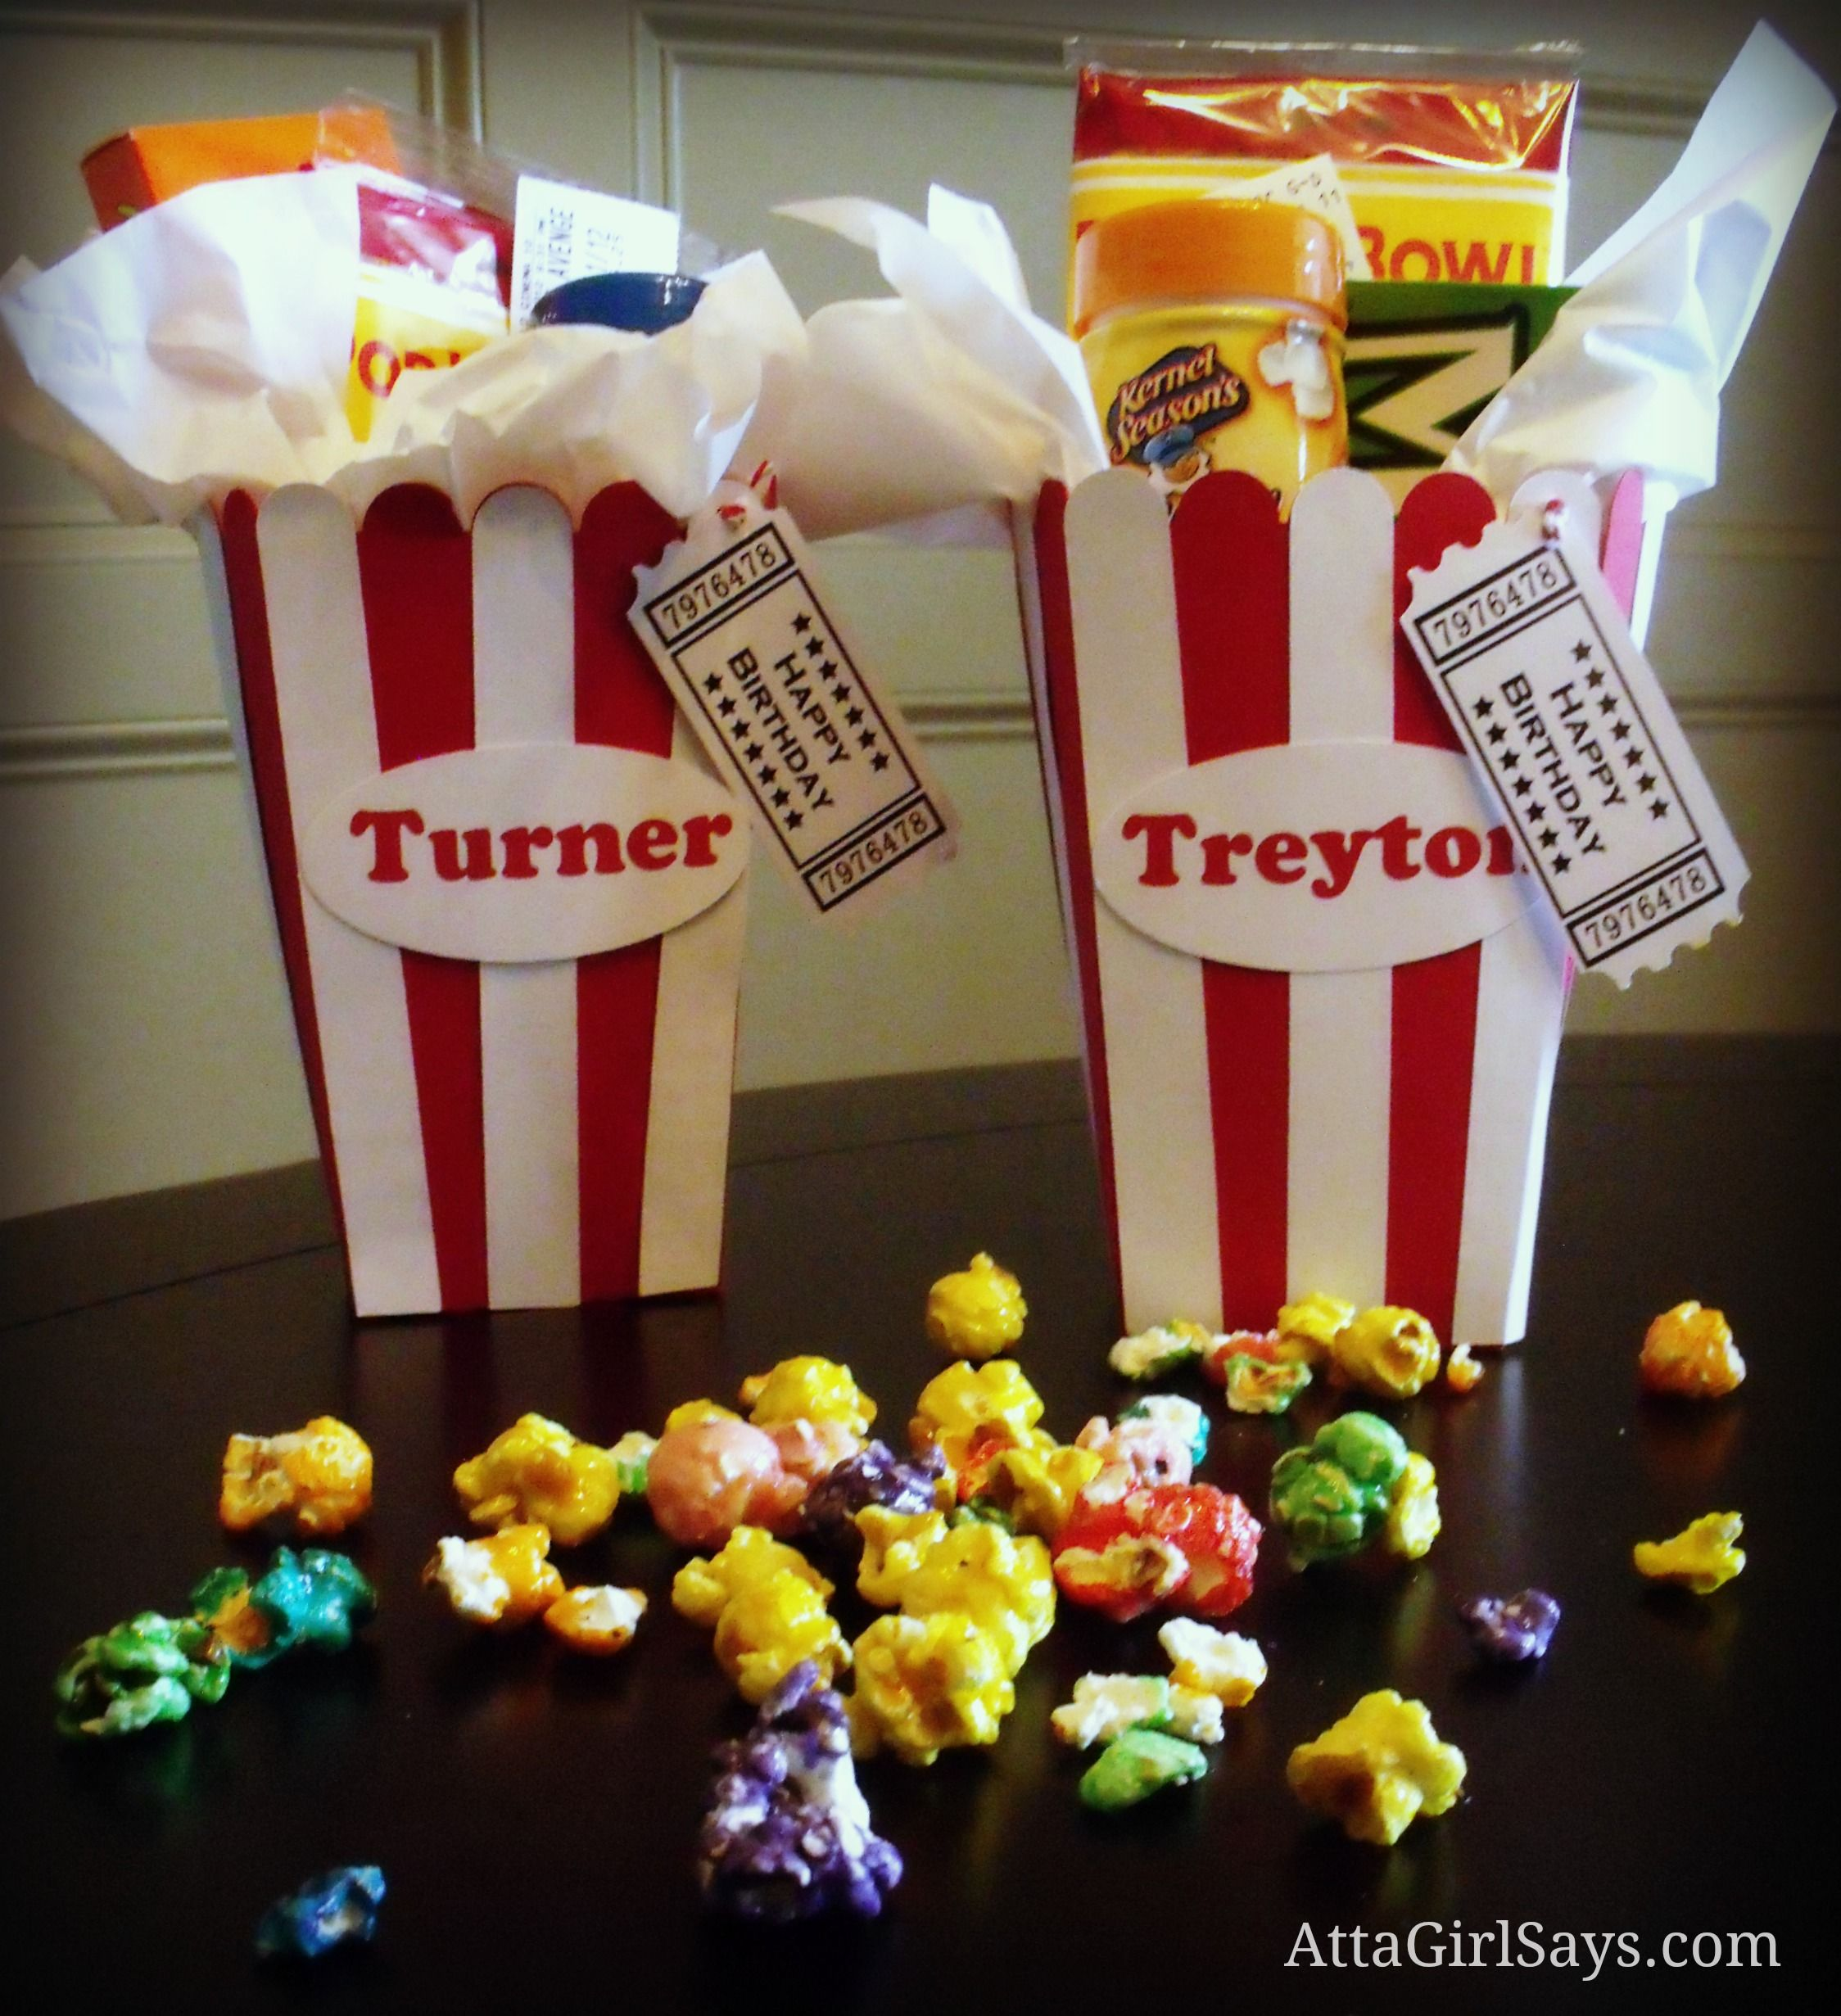 Popcorn Bucket Birthday Gift From Atta Girl Says. Includes